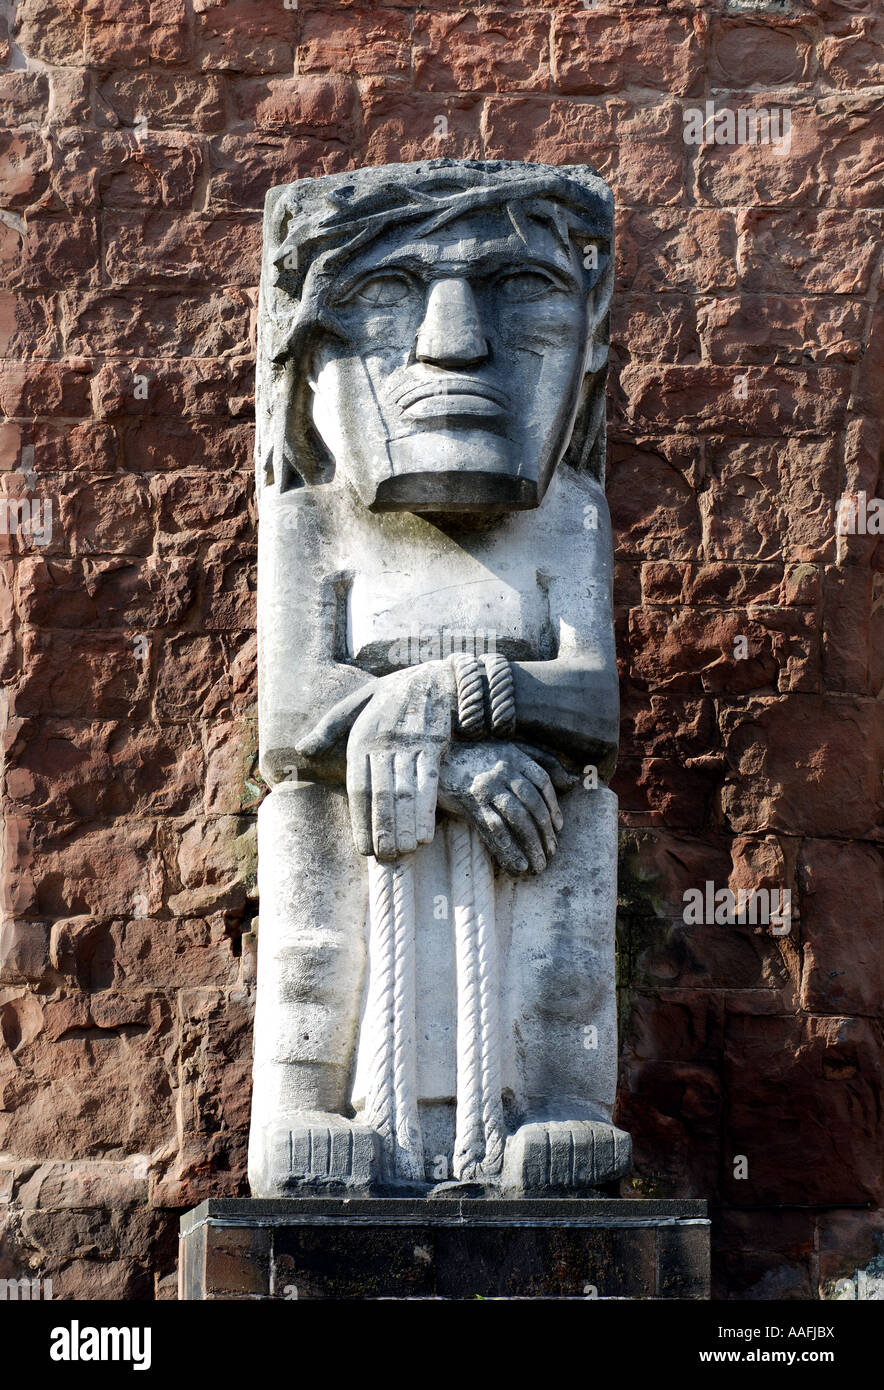 Jacob Epstein s Ecce Homo sculpture in Old Cathedral, Coventry, West Midlands, England, UK - Stock Image